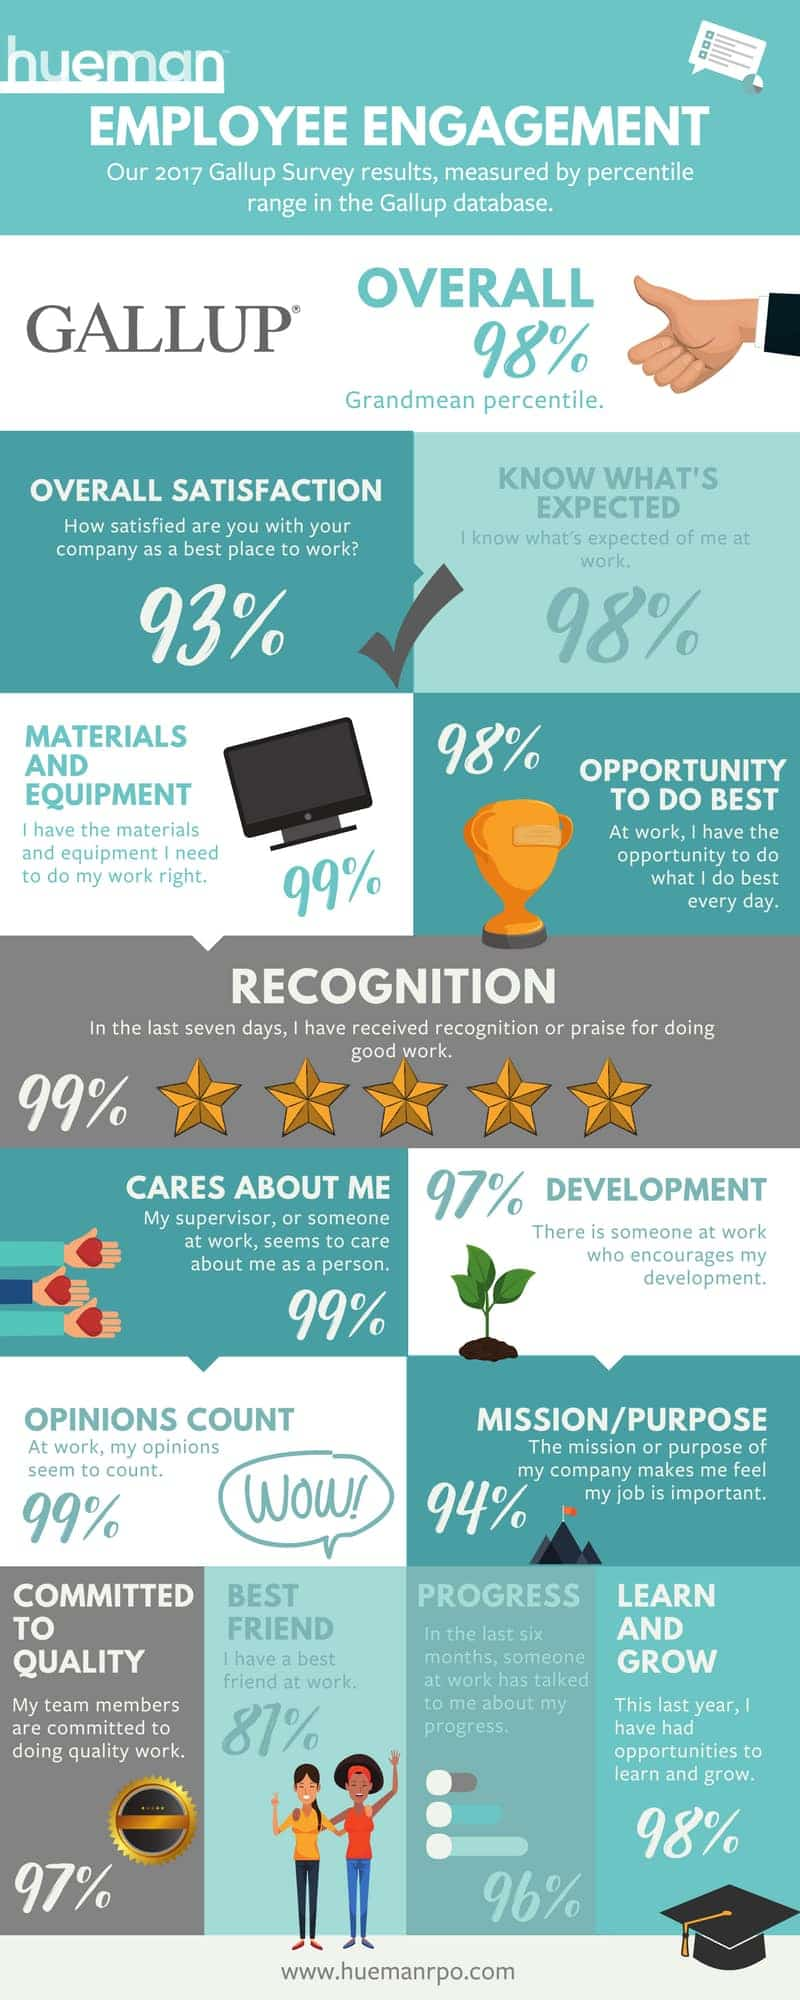 Employee Engagement Statistics and Awards